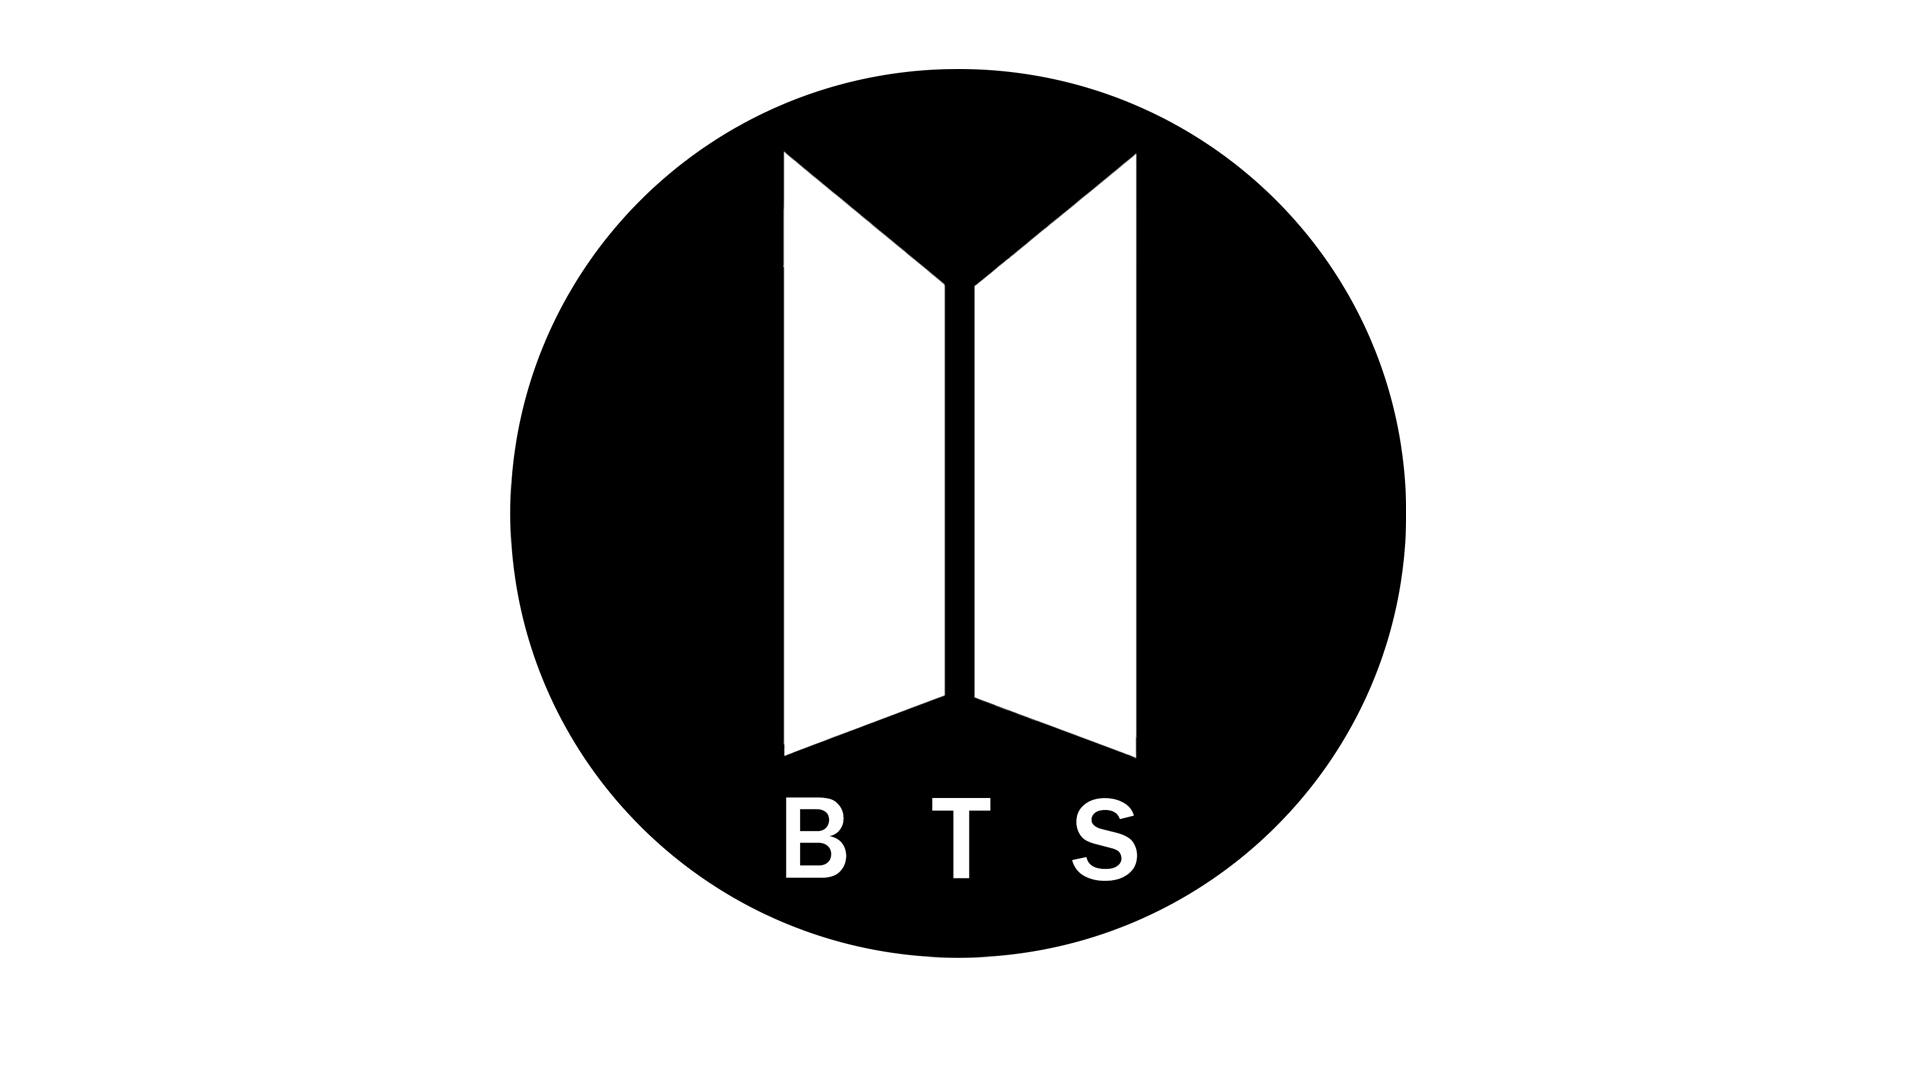 Bts army logo png. Symbol meaning history and